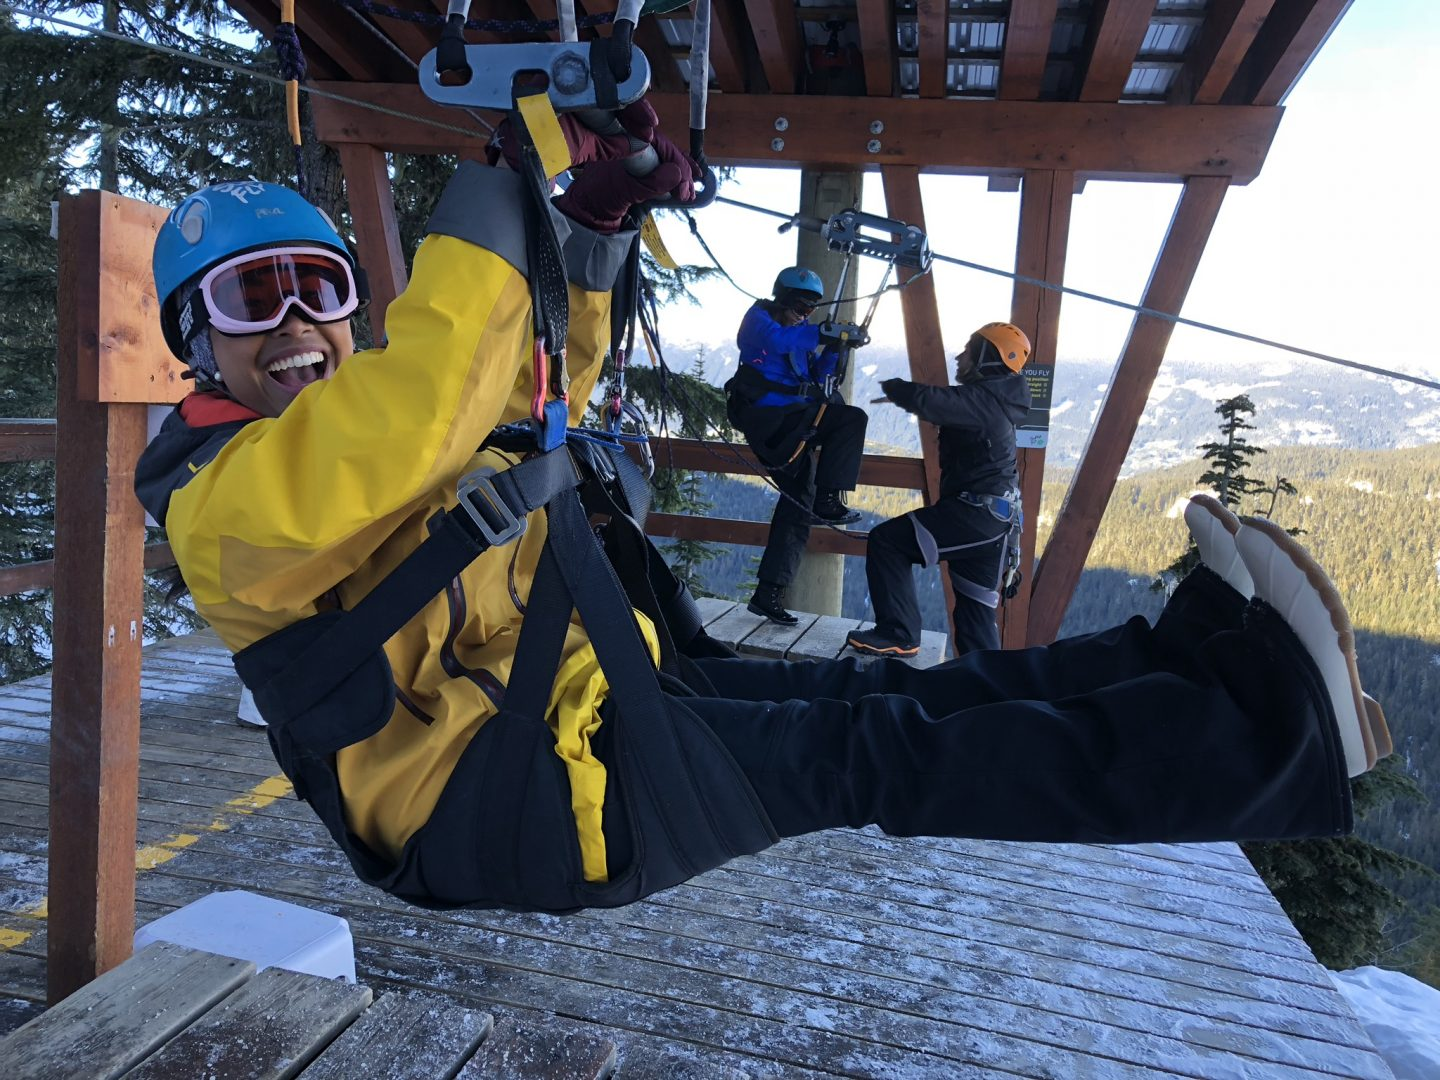 superfly - whistler - things to do in whistler - superfly review